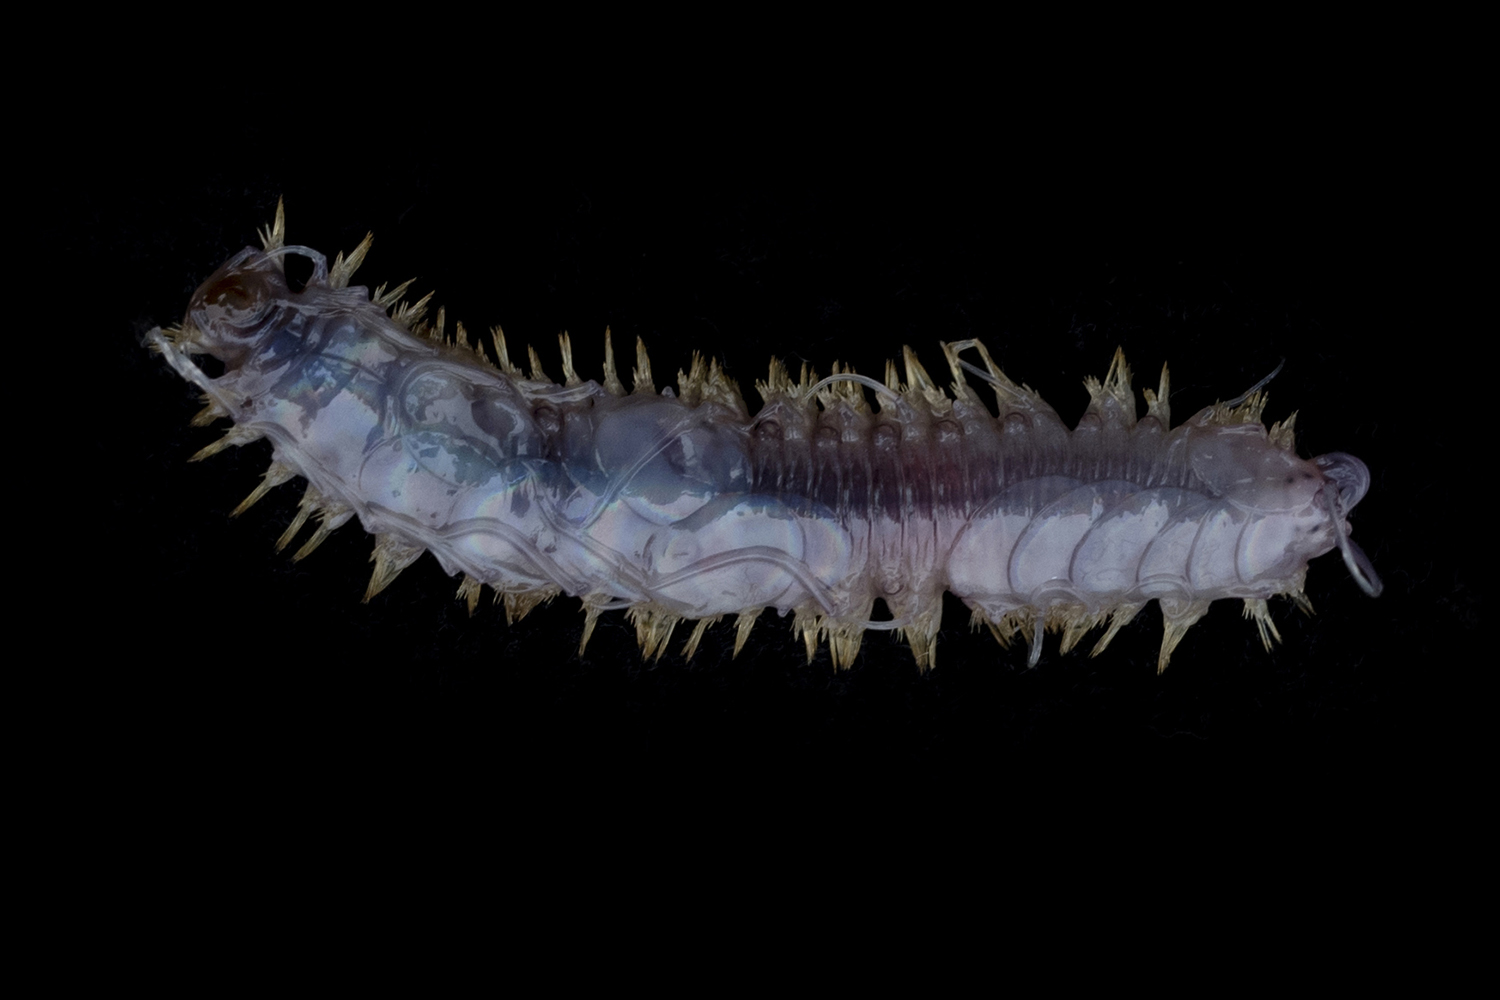 A polynoid polychaete worm collected off Lecointe Island (Gerlache Strait, Antarctic Peninsula) at around 560 meters depth.